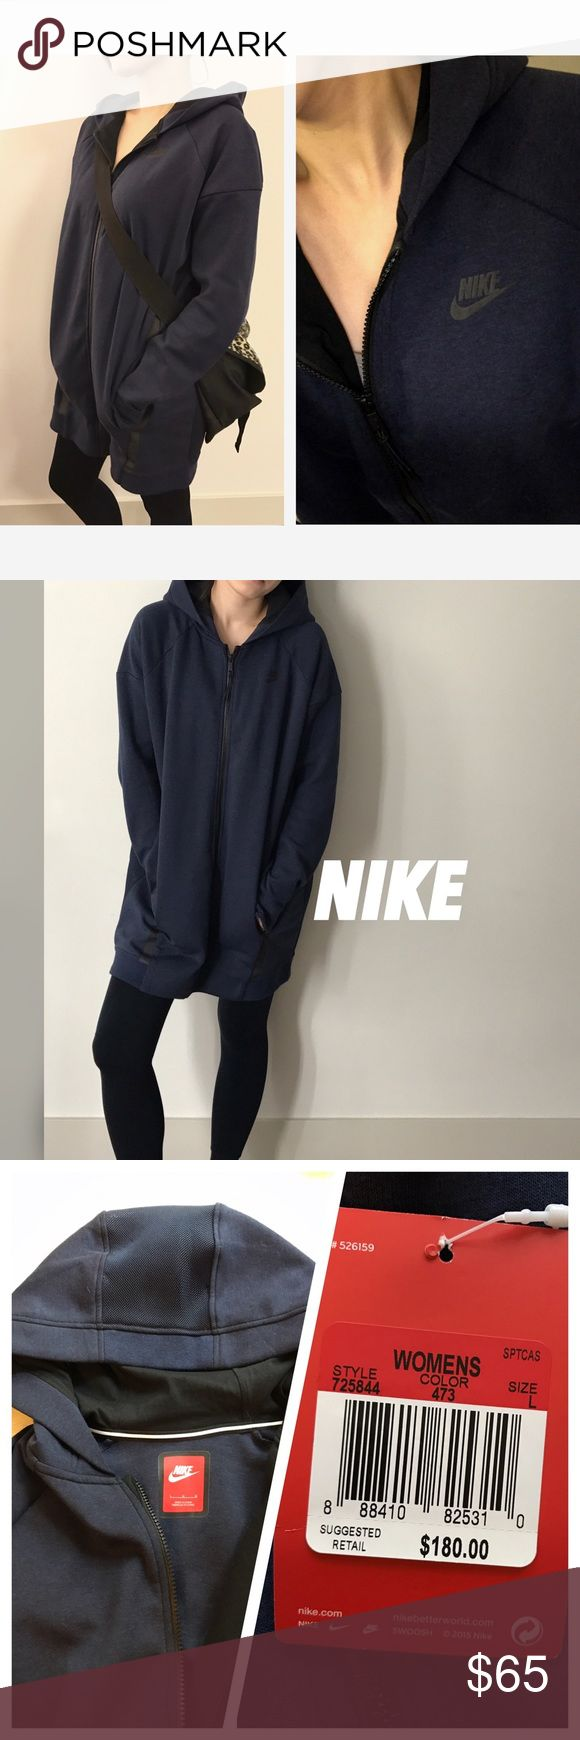 "NEW‼️Nike Mesh Cocoon Hoodie Mesh Cocoon Jacket.                                                         Style #725844. Model wears size S on picture 1, and wears size L for picture 2. ( For reference, I'm 5'5"" tall, 121lb) It has a lot room, very cozy but the hood and both underarm sides is mesh design. Underarm to the bottom has 23inches. Color: Navy. New with tag. Retail for $180. Great use for outfit on the plane✈️ or maternity wear. Only Size S available✔️✔️✔️ Nike Jackets & Coats"